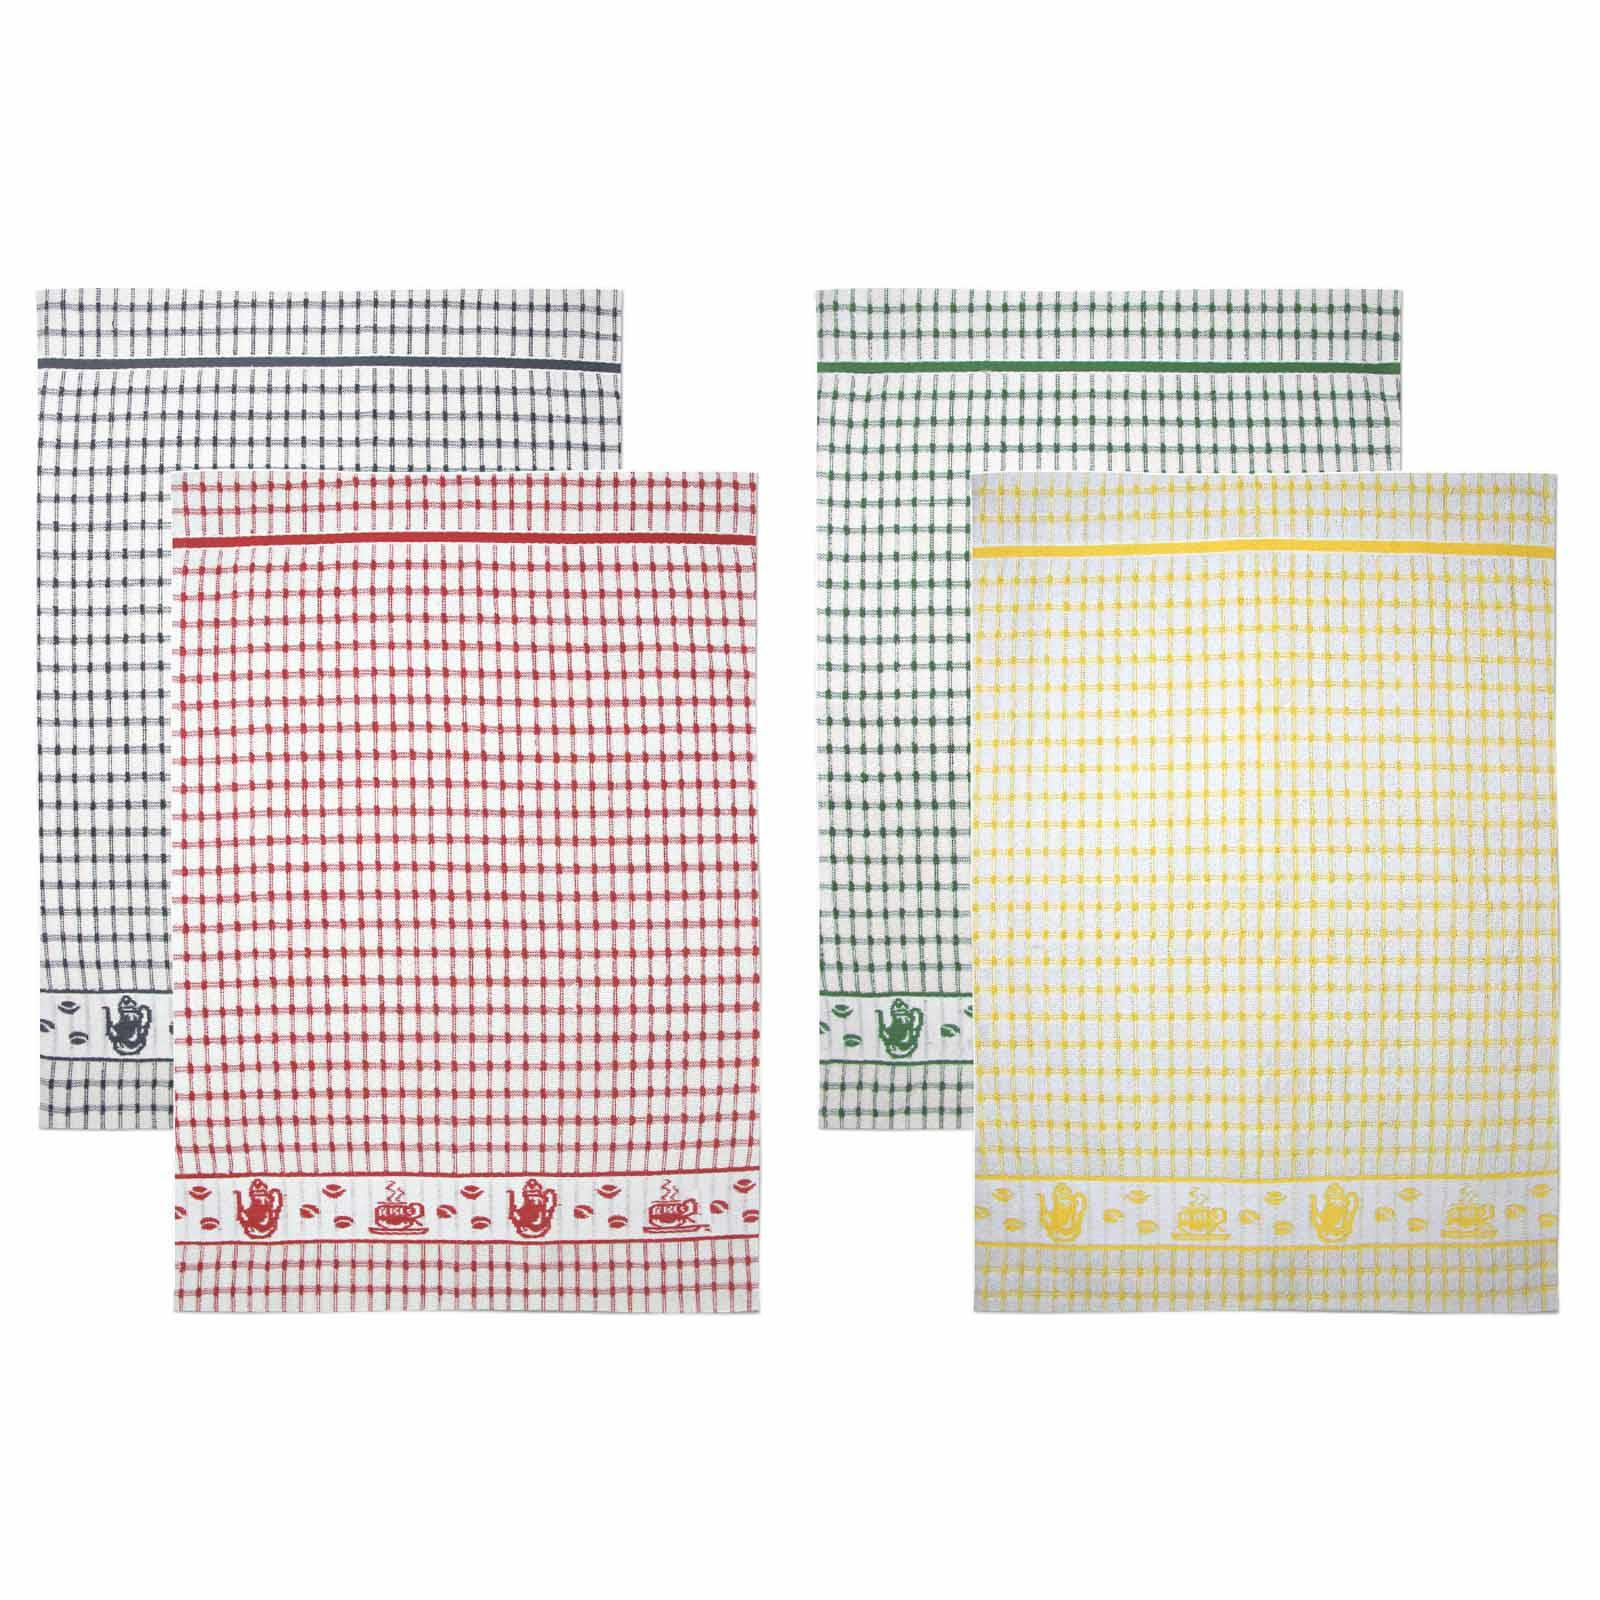 Packs-of-2-4-6-12-Tea-Towels-100-Cotton-Terry-Kitchen-Dish-Drying-Towel-Sets thumbnail 80